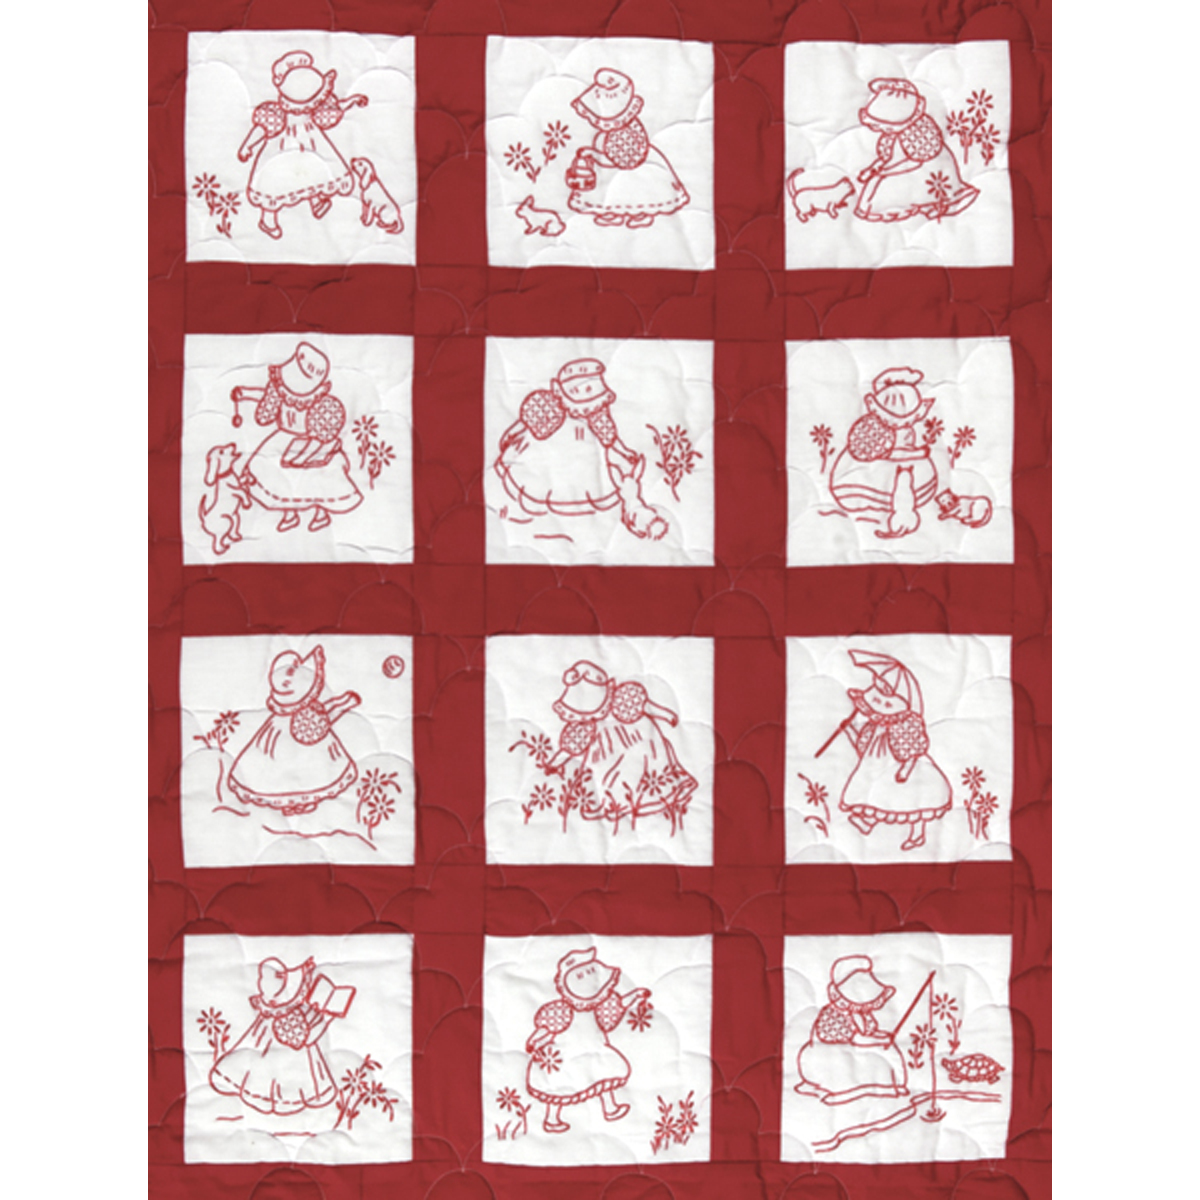 Stamped Embroidery Blocks - 9in - Sunbonnet Girls